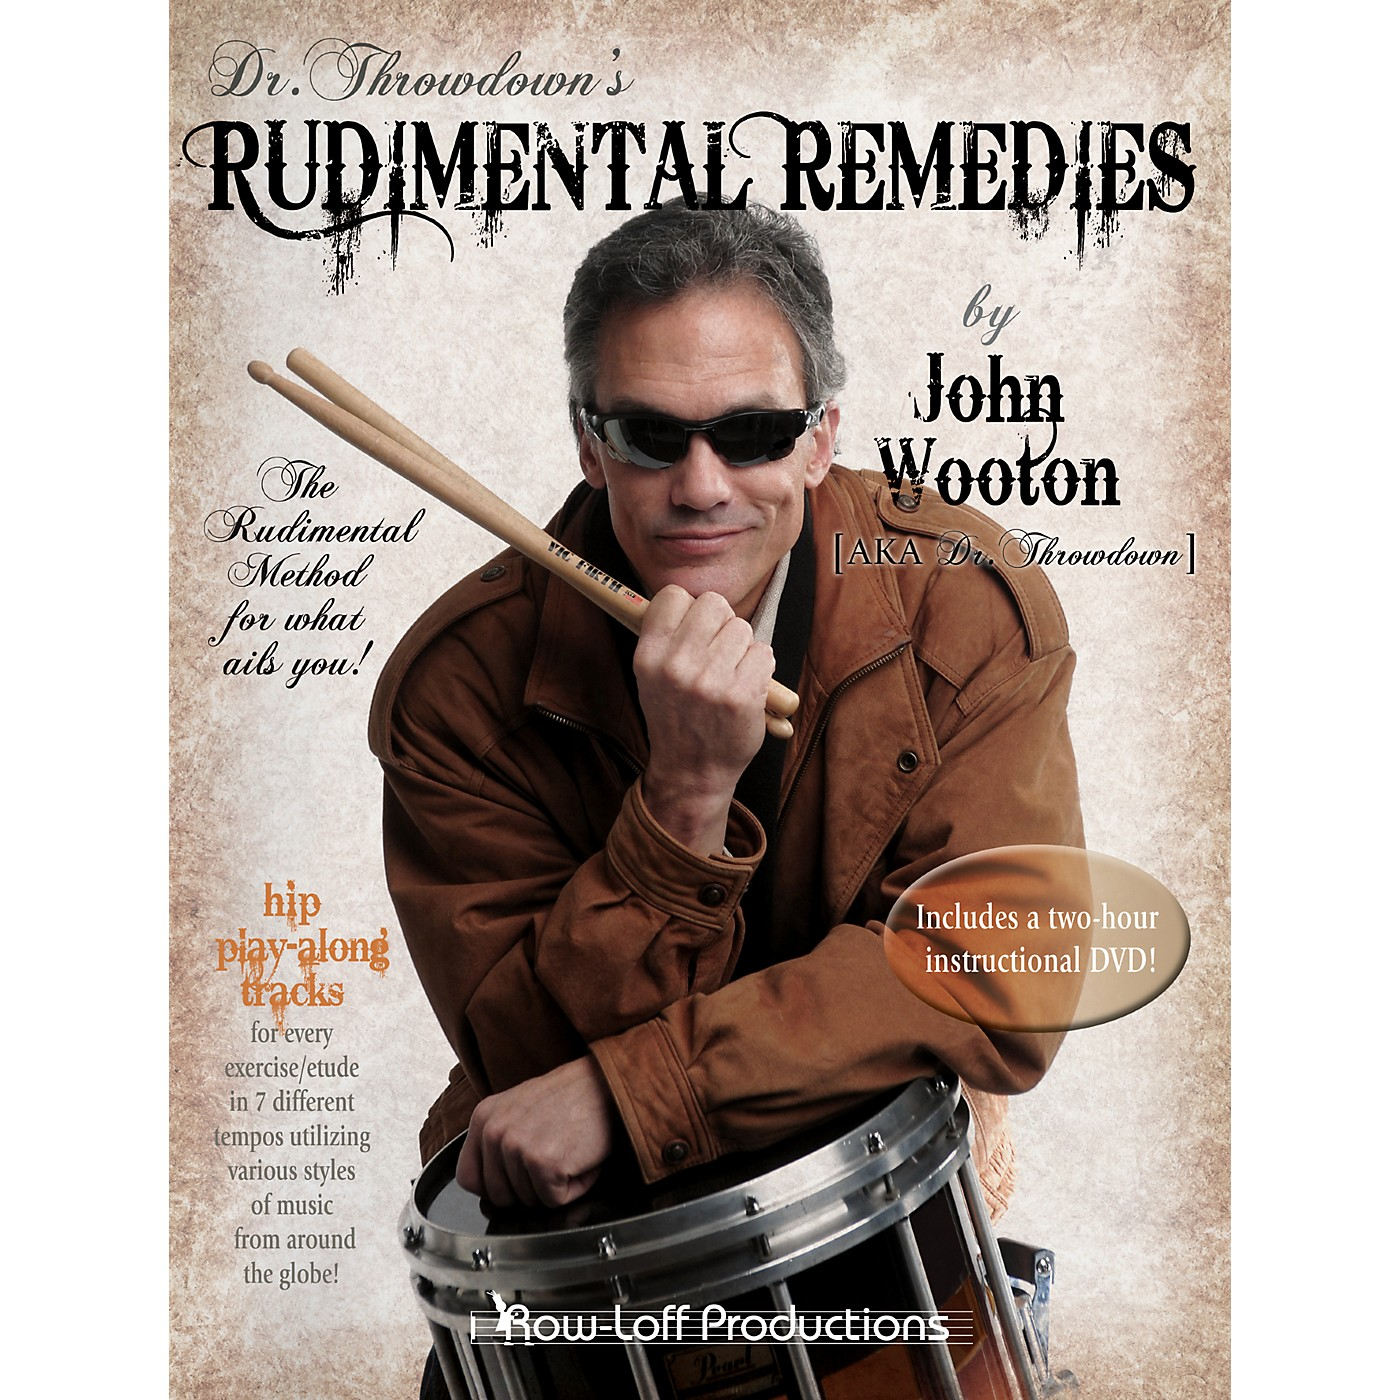 Row-Loff Rudimental Remedies Book thumbnail